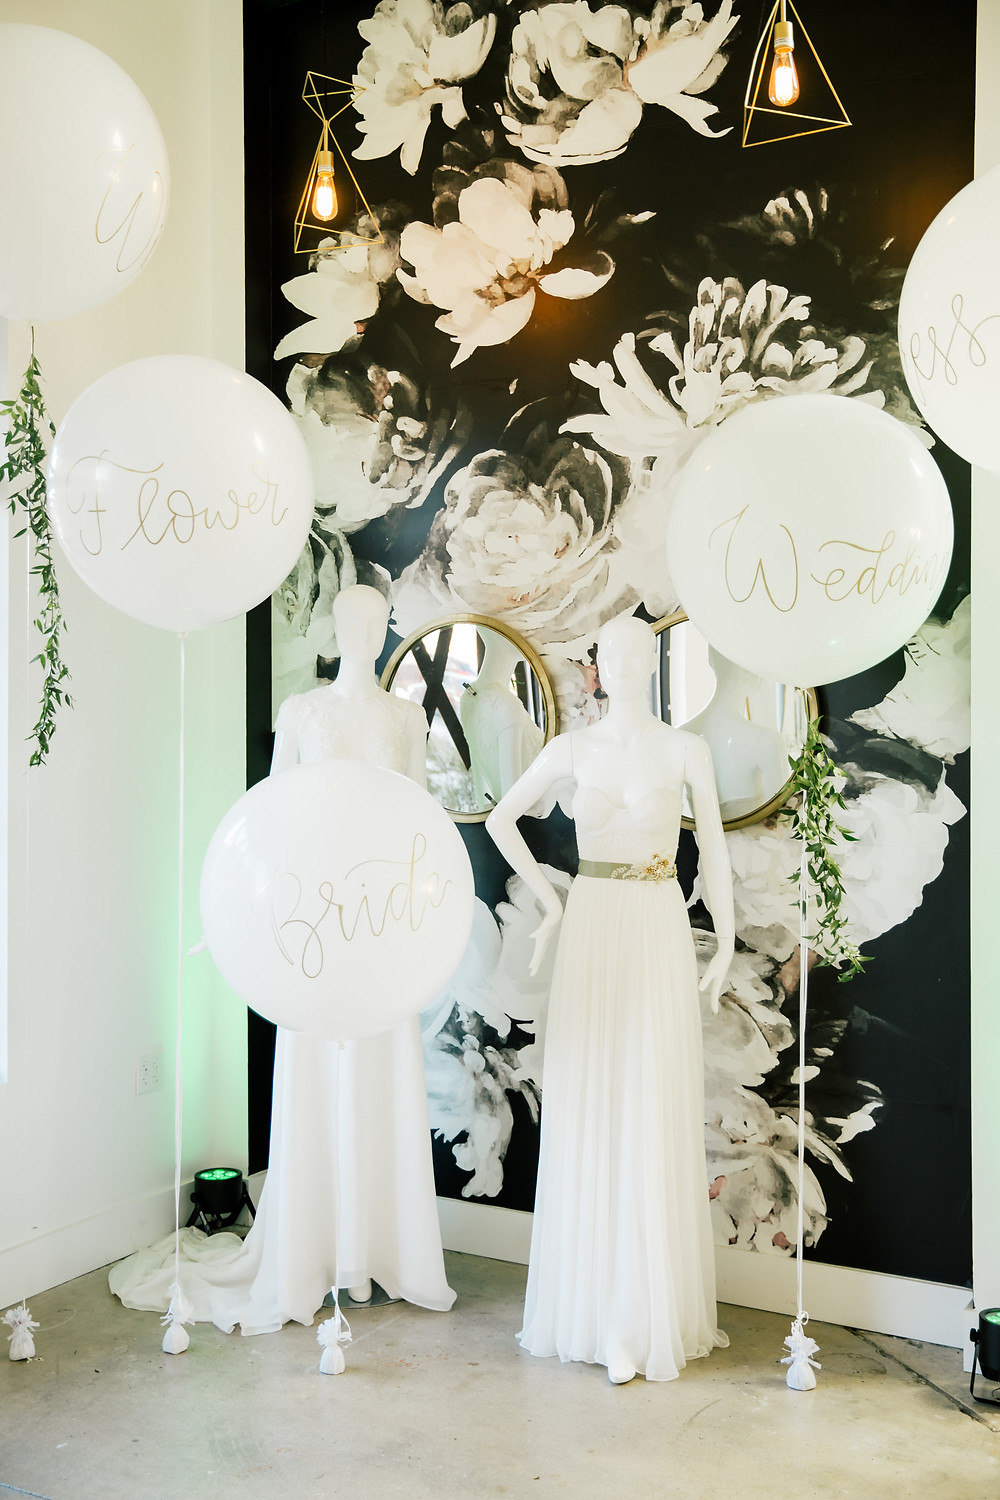 Wildflower Bridal gowns and white gold-lettered balloons fill a sun-lit corner at Engaged